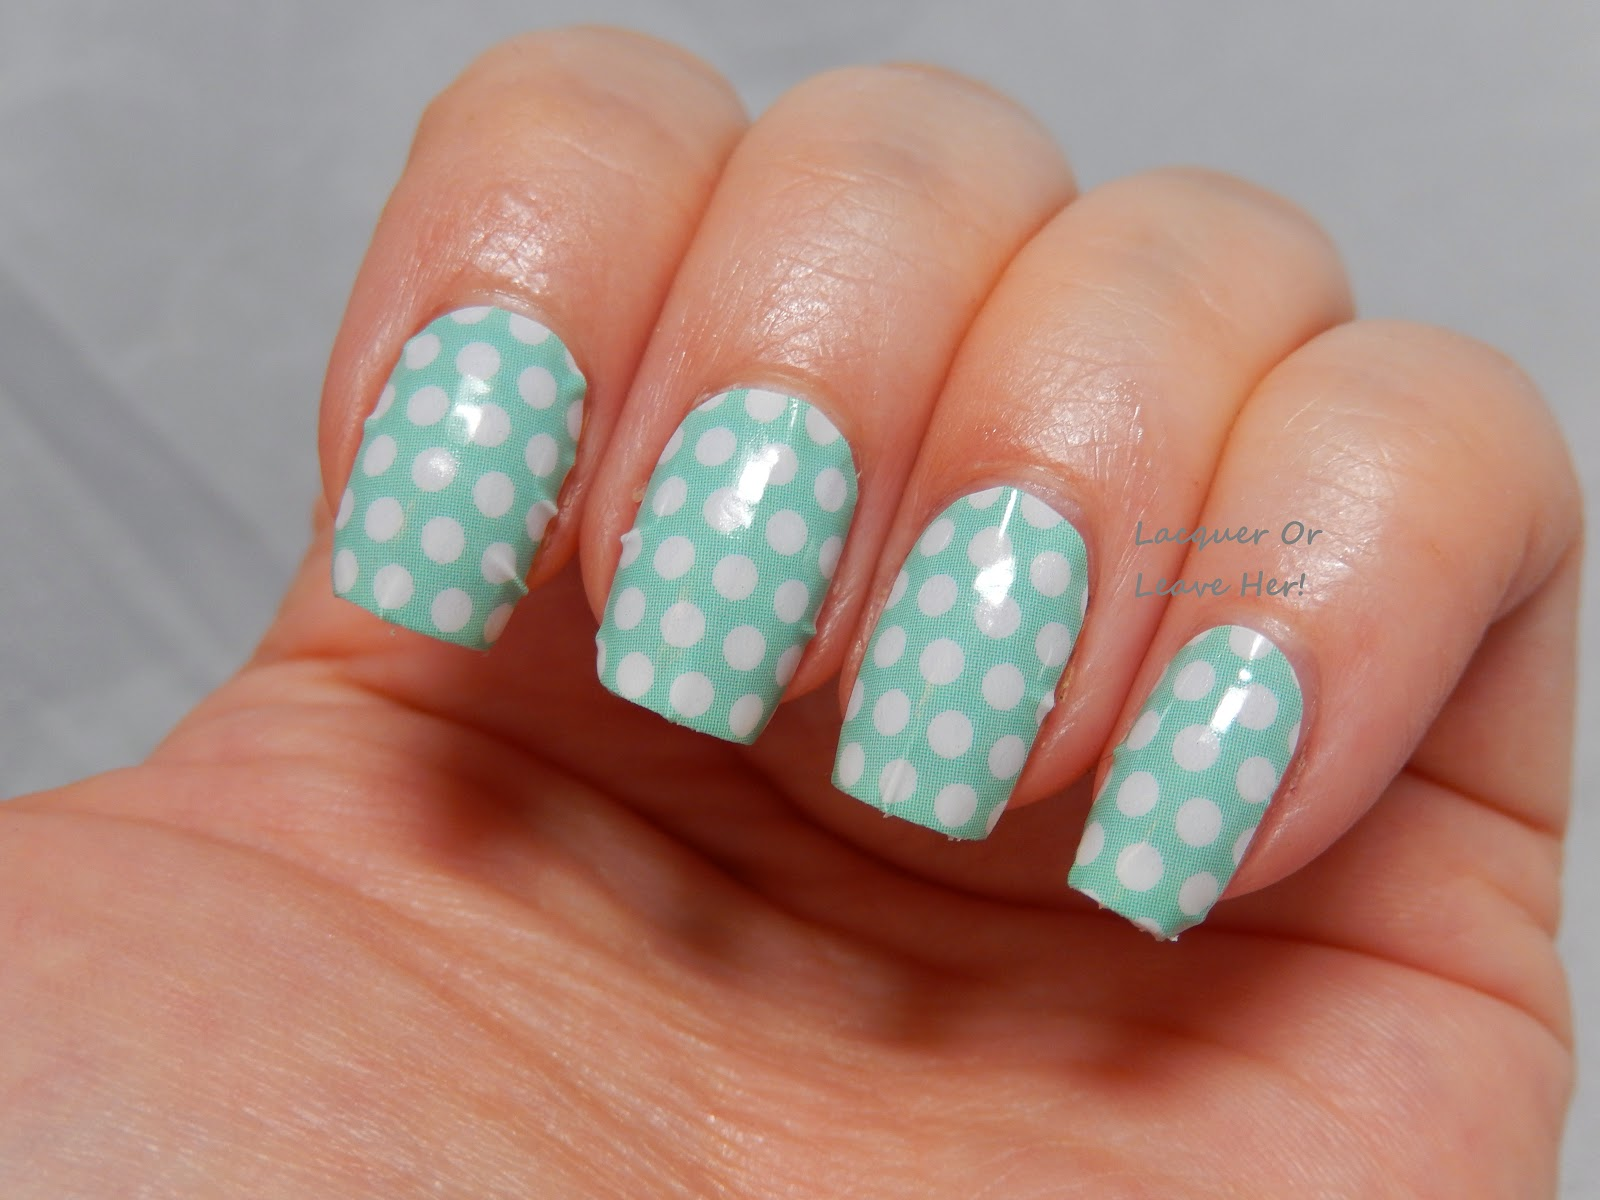 Lacquer or Leave Her!: Review: Jamberry Nail Wraps